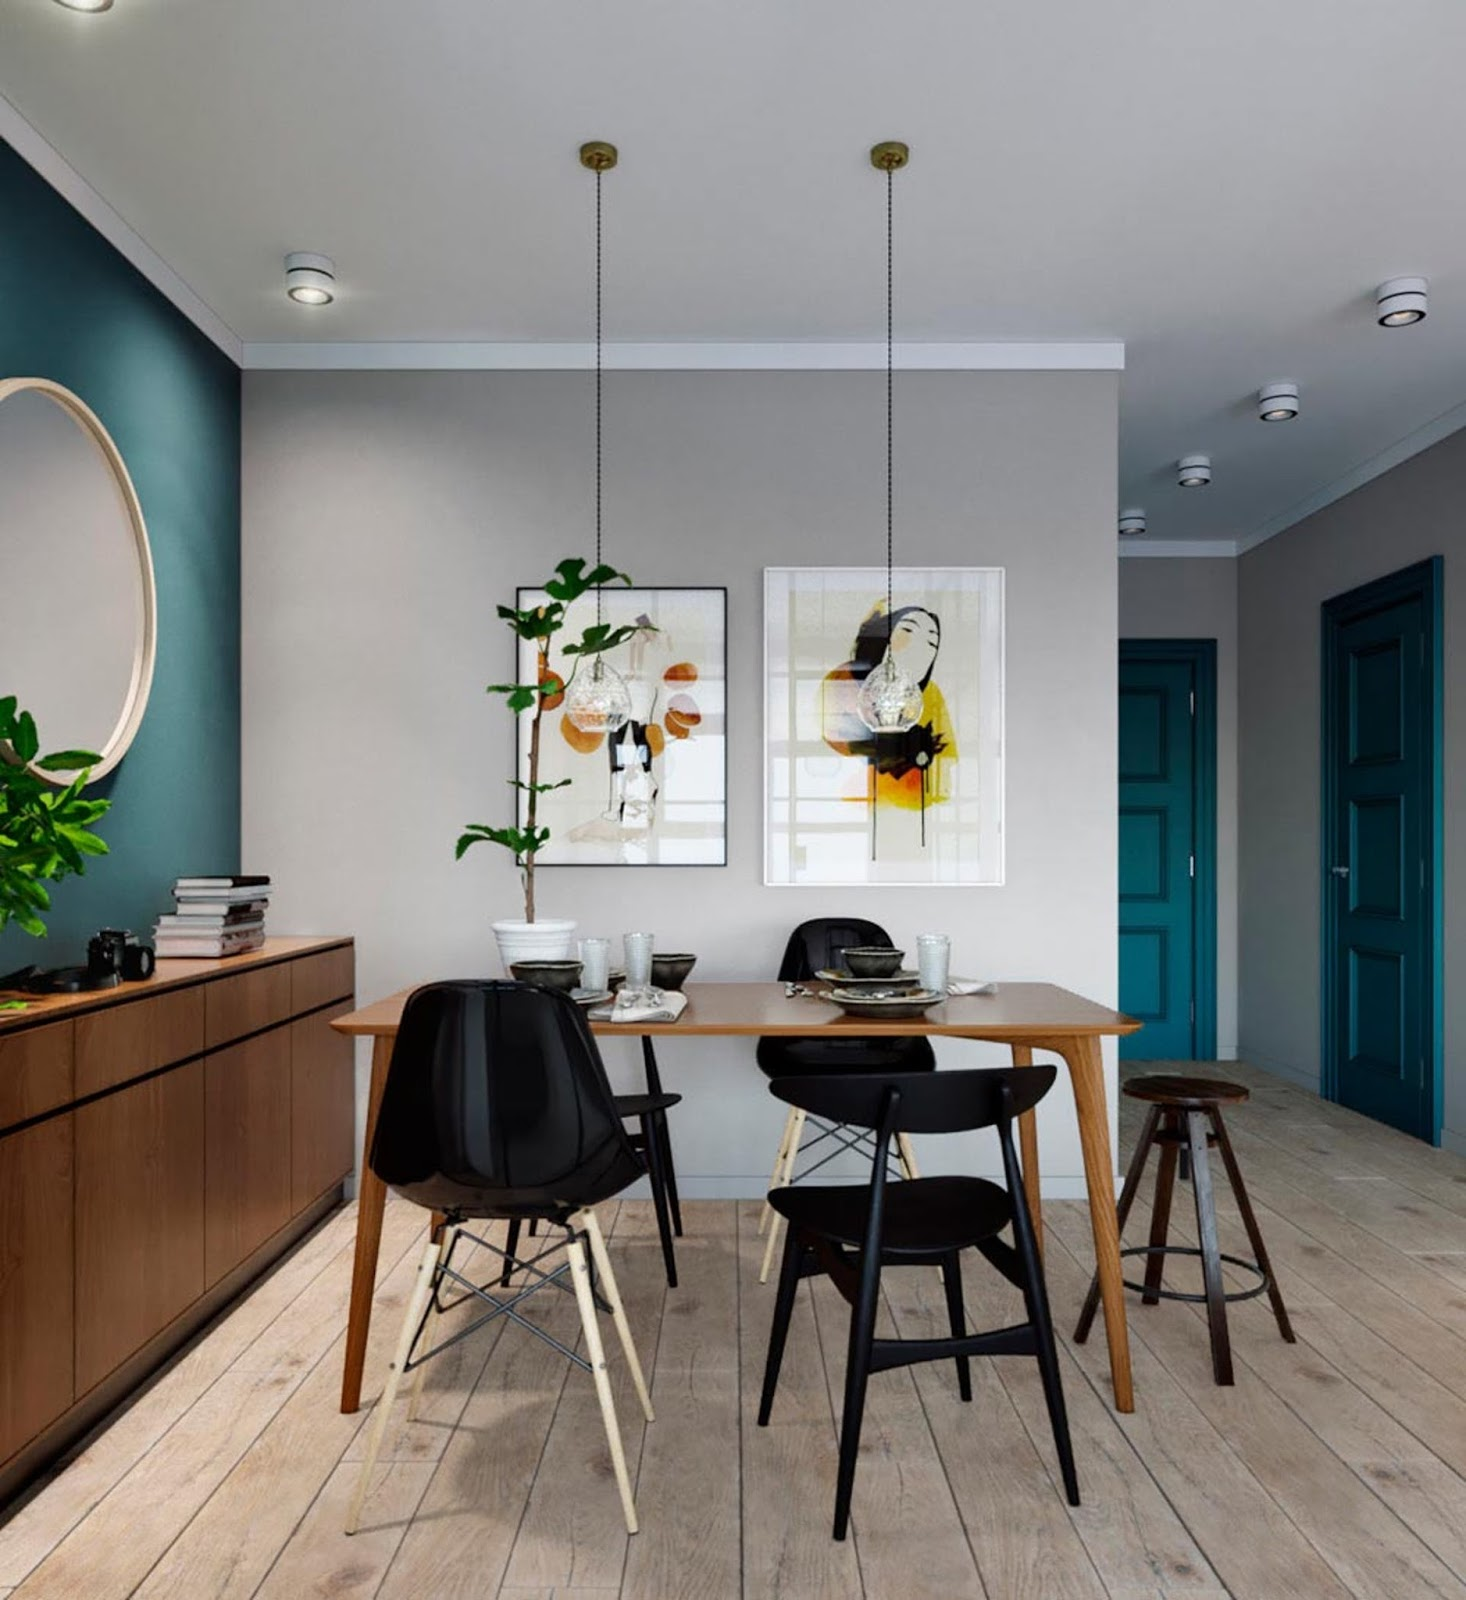 loft like small interior, teal painted doors, scandinavian design interiot